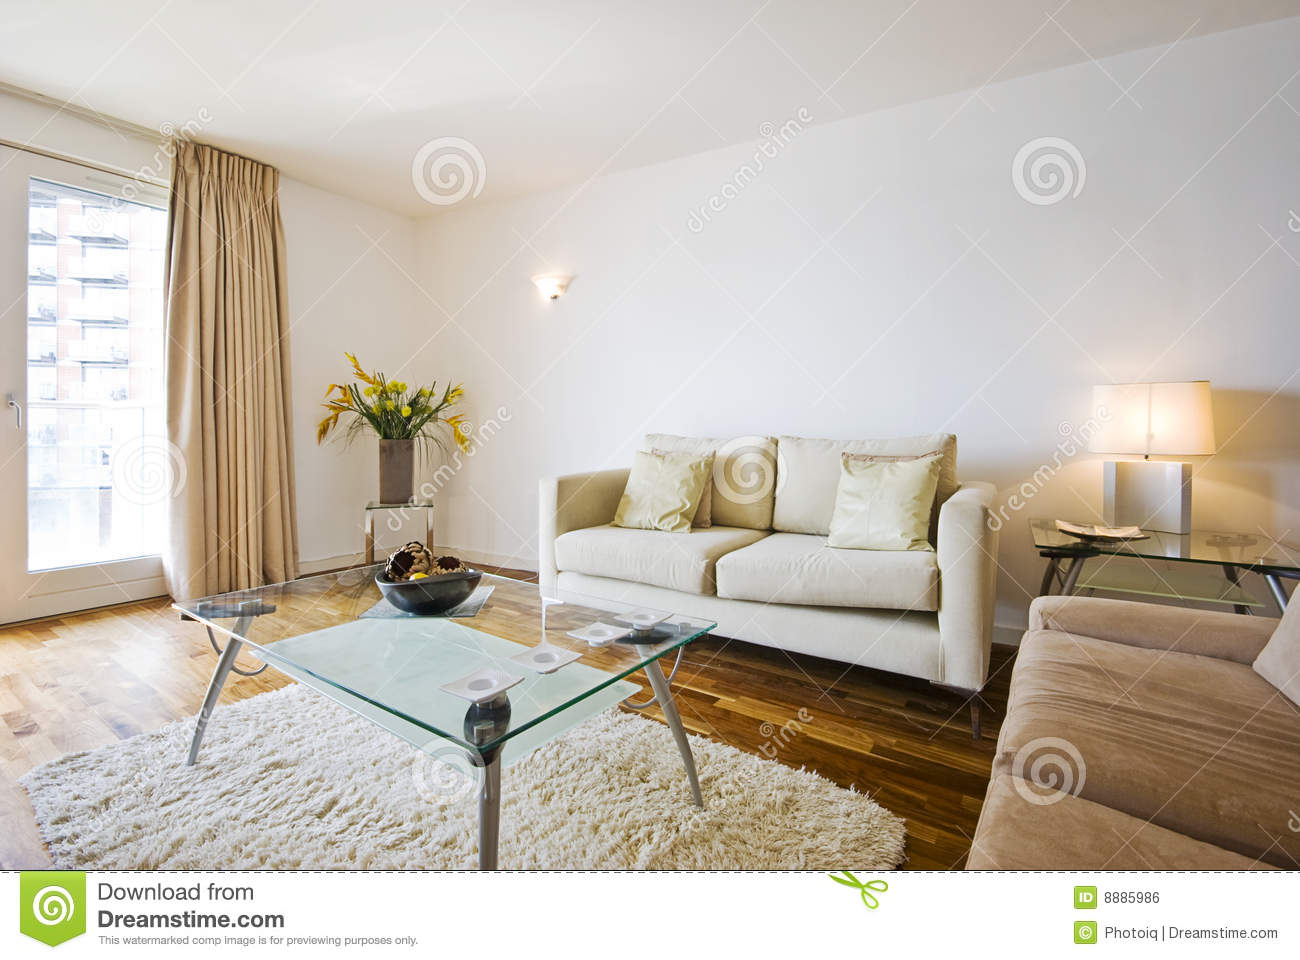 smart living room royalty free stock image image 8885986